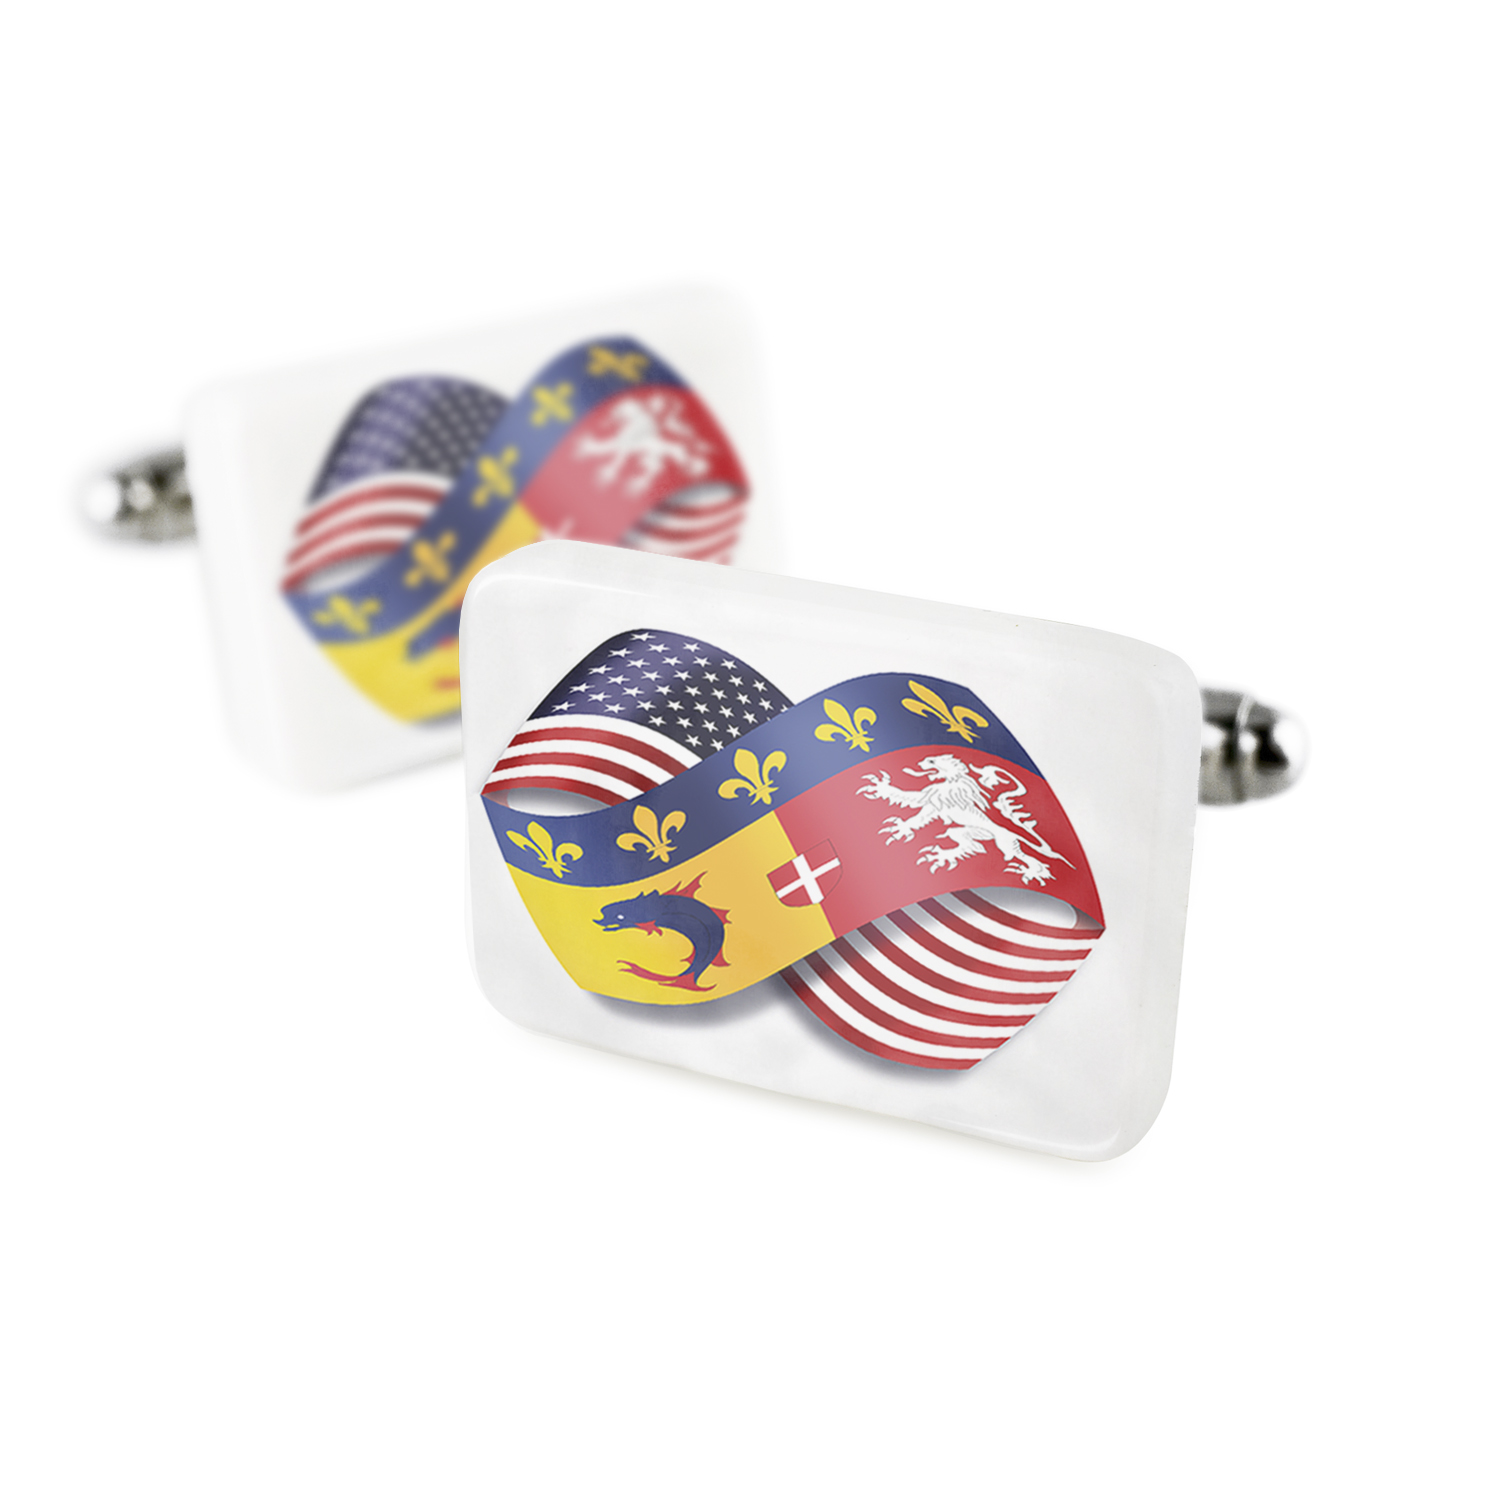 Cufflinks Infinity Flags USA and Rhone-Alpes region France Porcelain Ceramic NEONBLOND